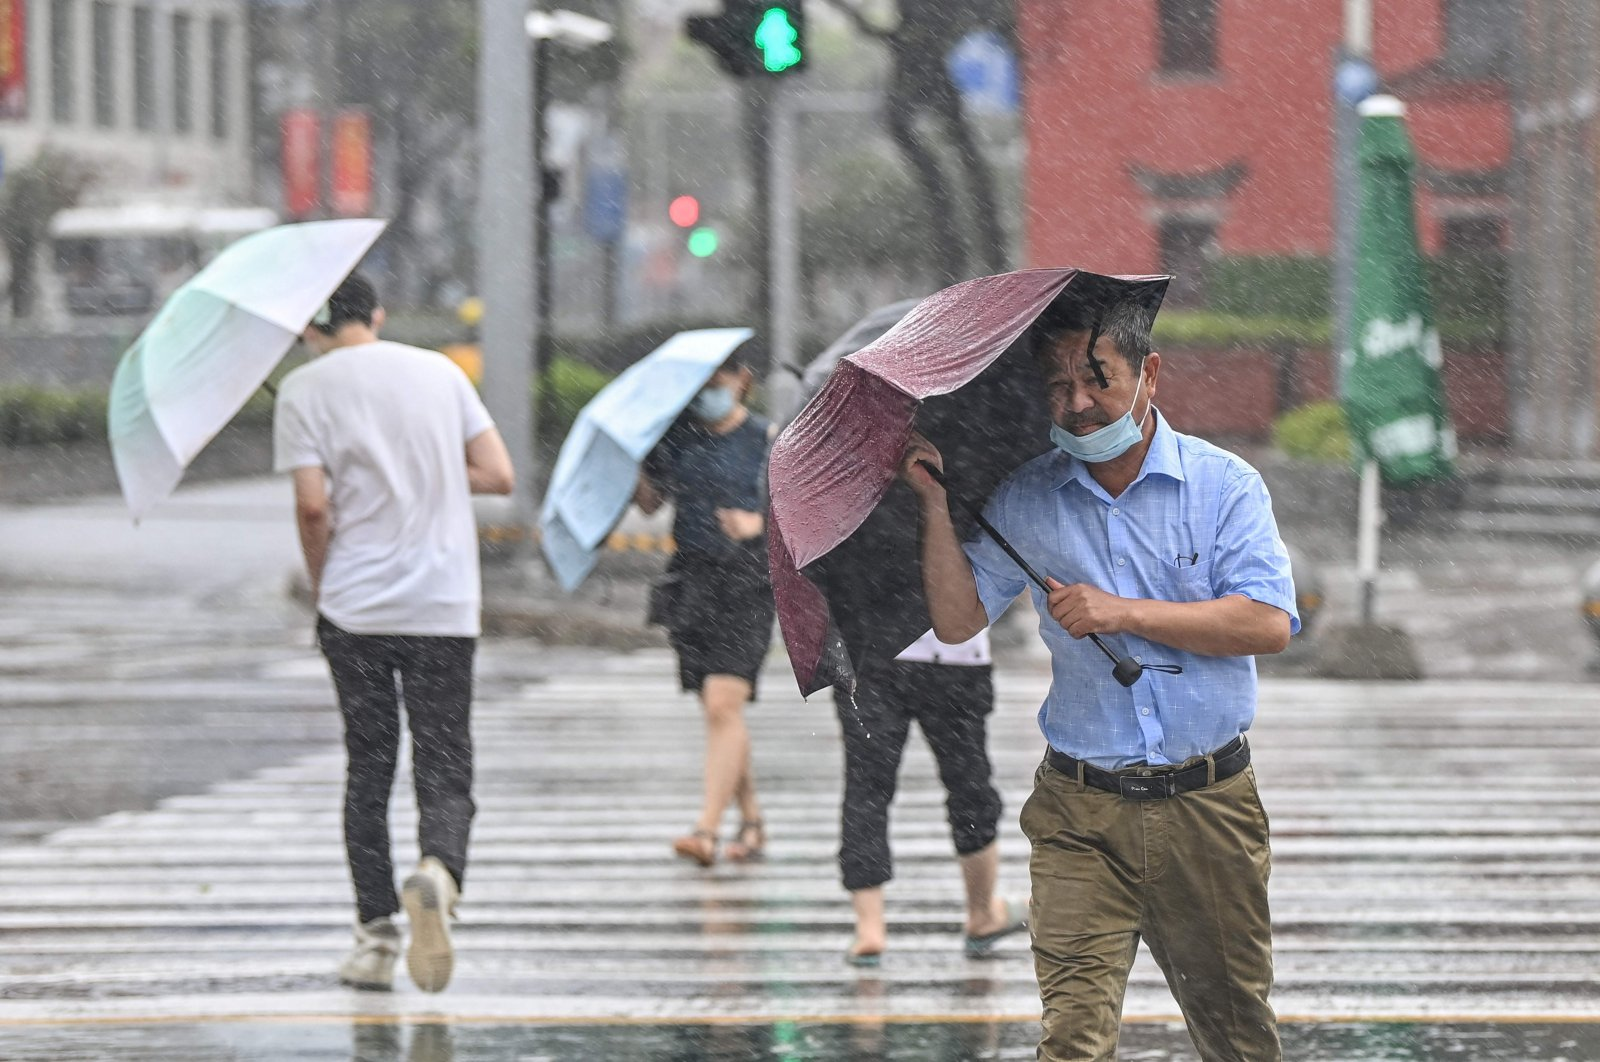 People cross the street in the wind and rain as Typhoon In-fa lashes the country's eastern coast, Ningbo, China, July 25, 2021. (AFP Photo)